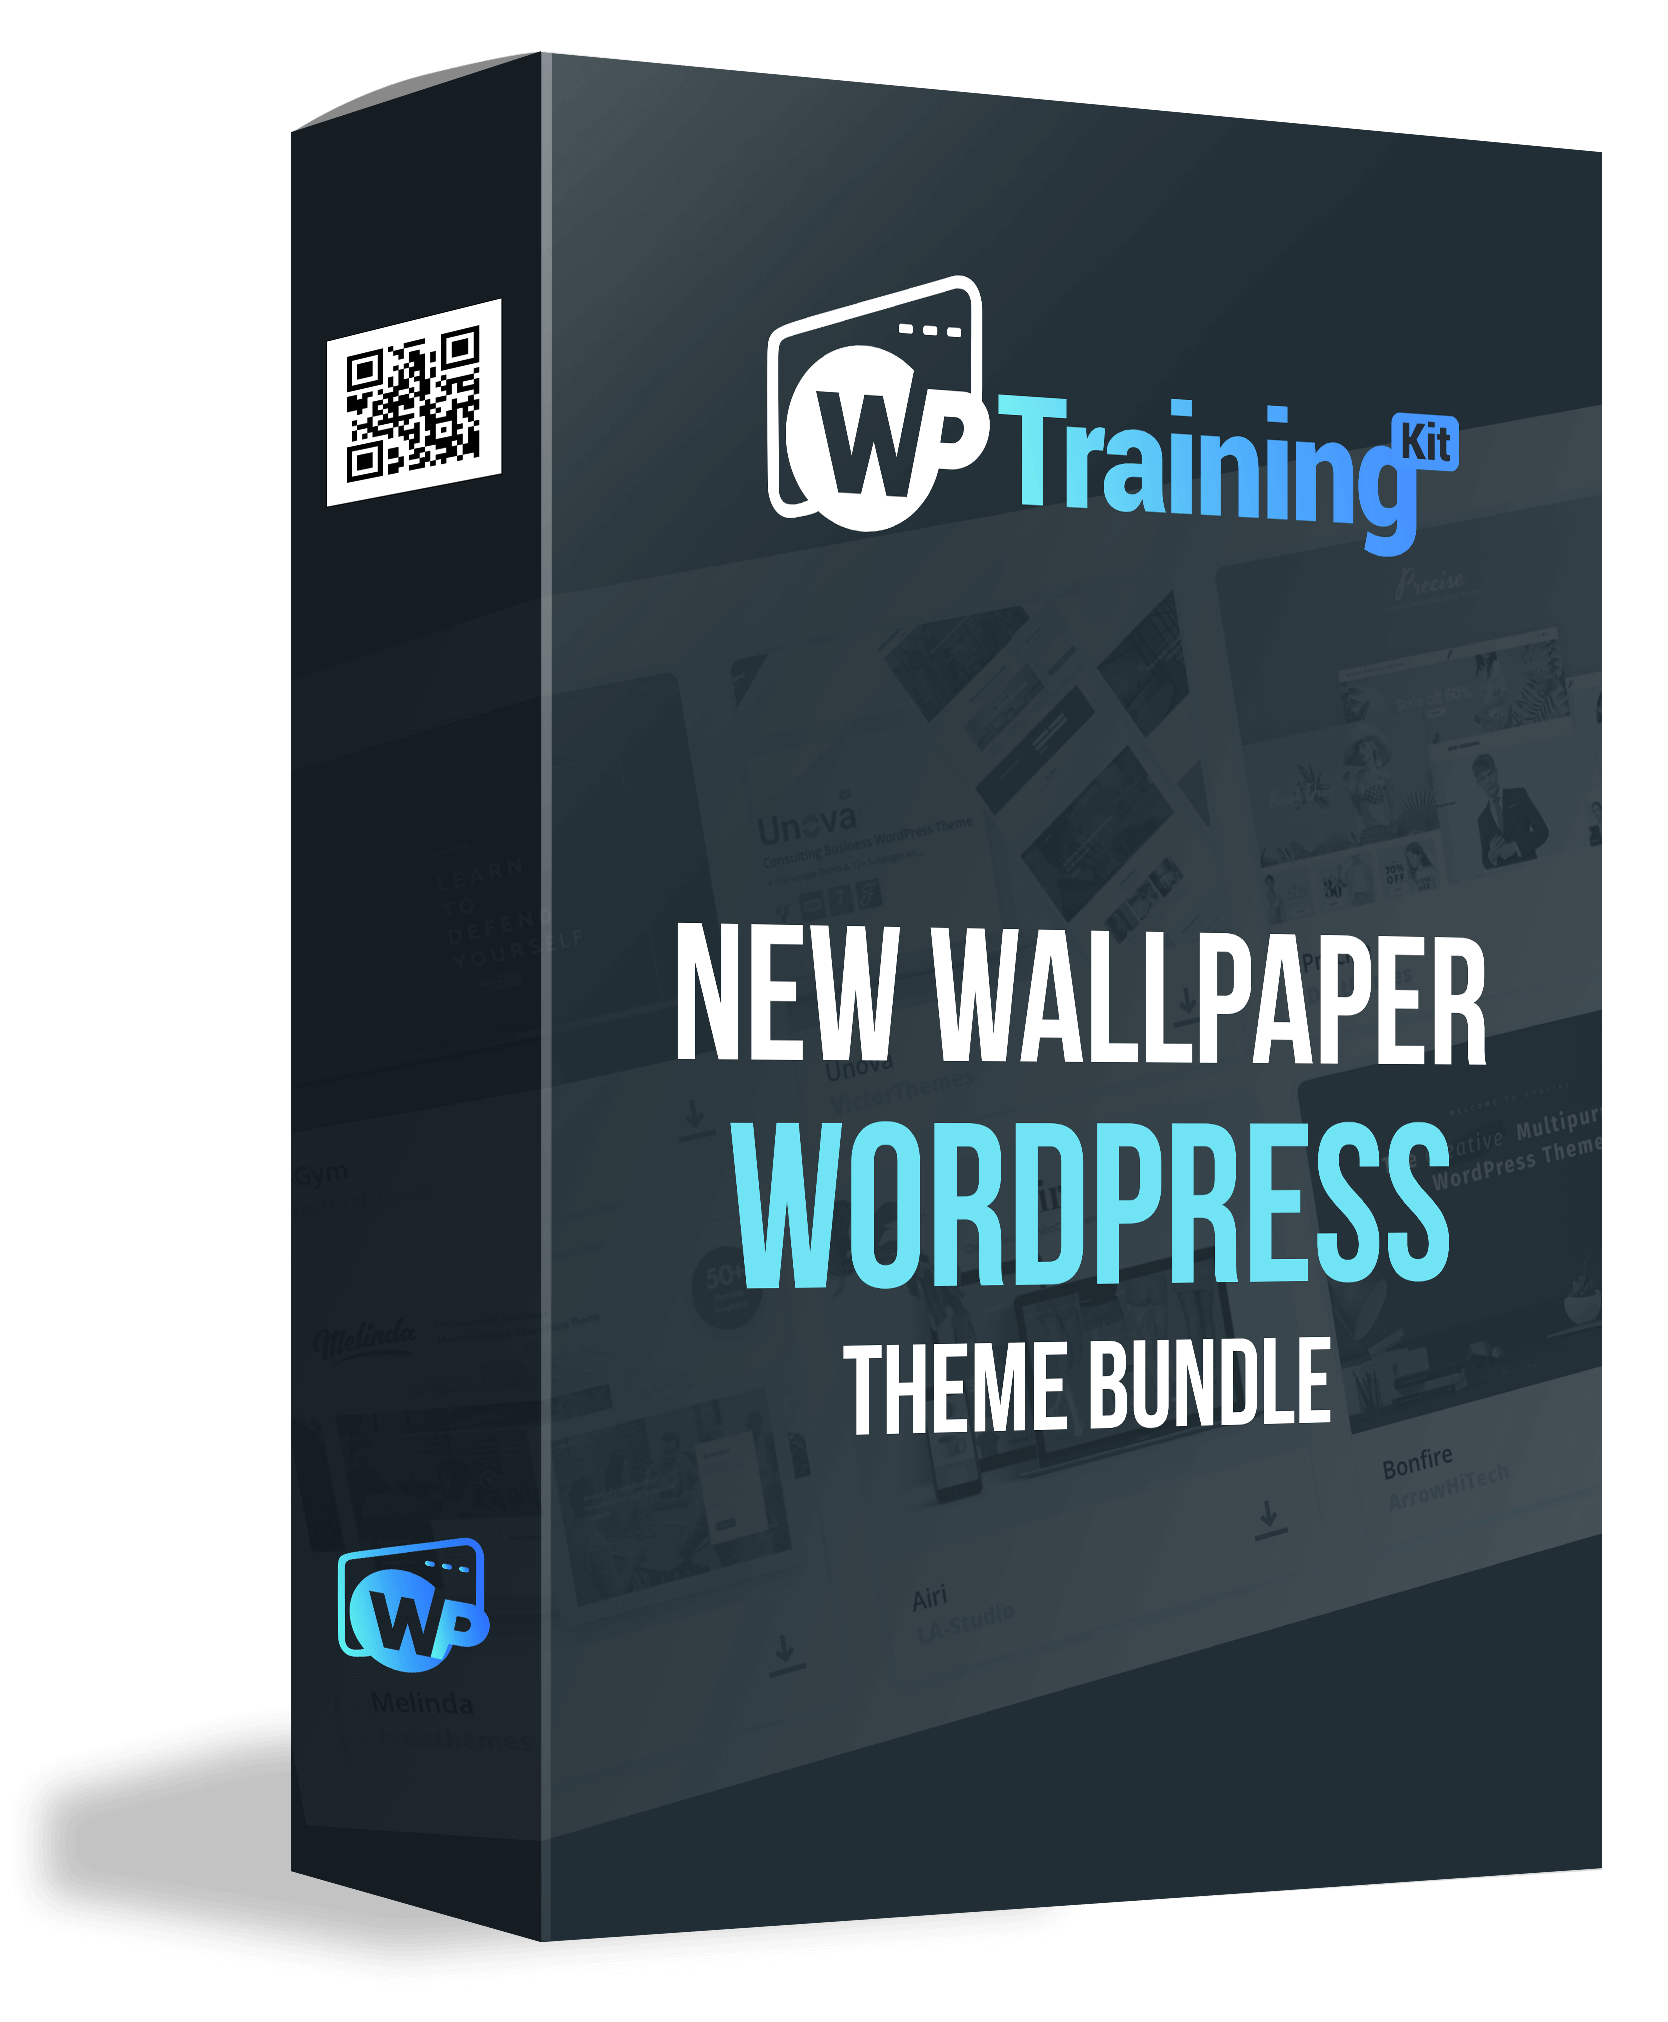 Bonus 3. New Wallpaper WordPress Theme Bundle Box Design